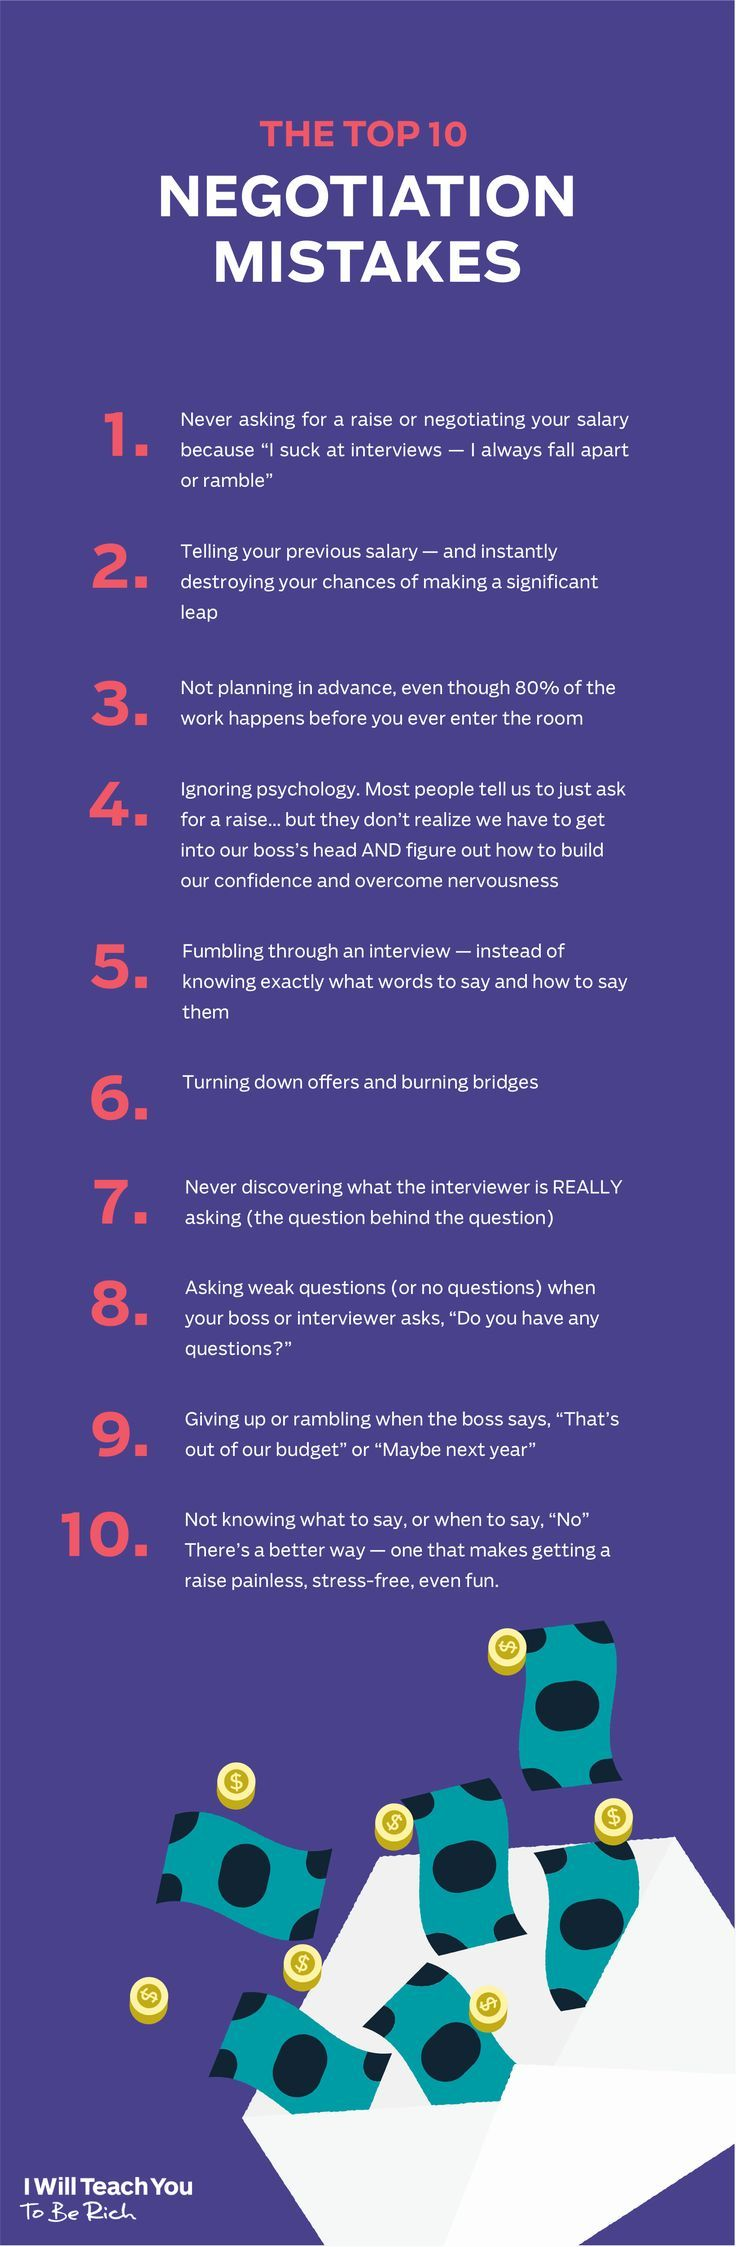 Blue apron interview - The Top 10 Negotiation Miskates From The Ultimate Guide To Asking For A Raise